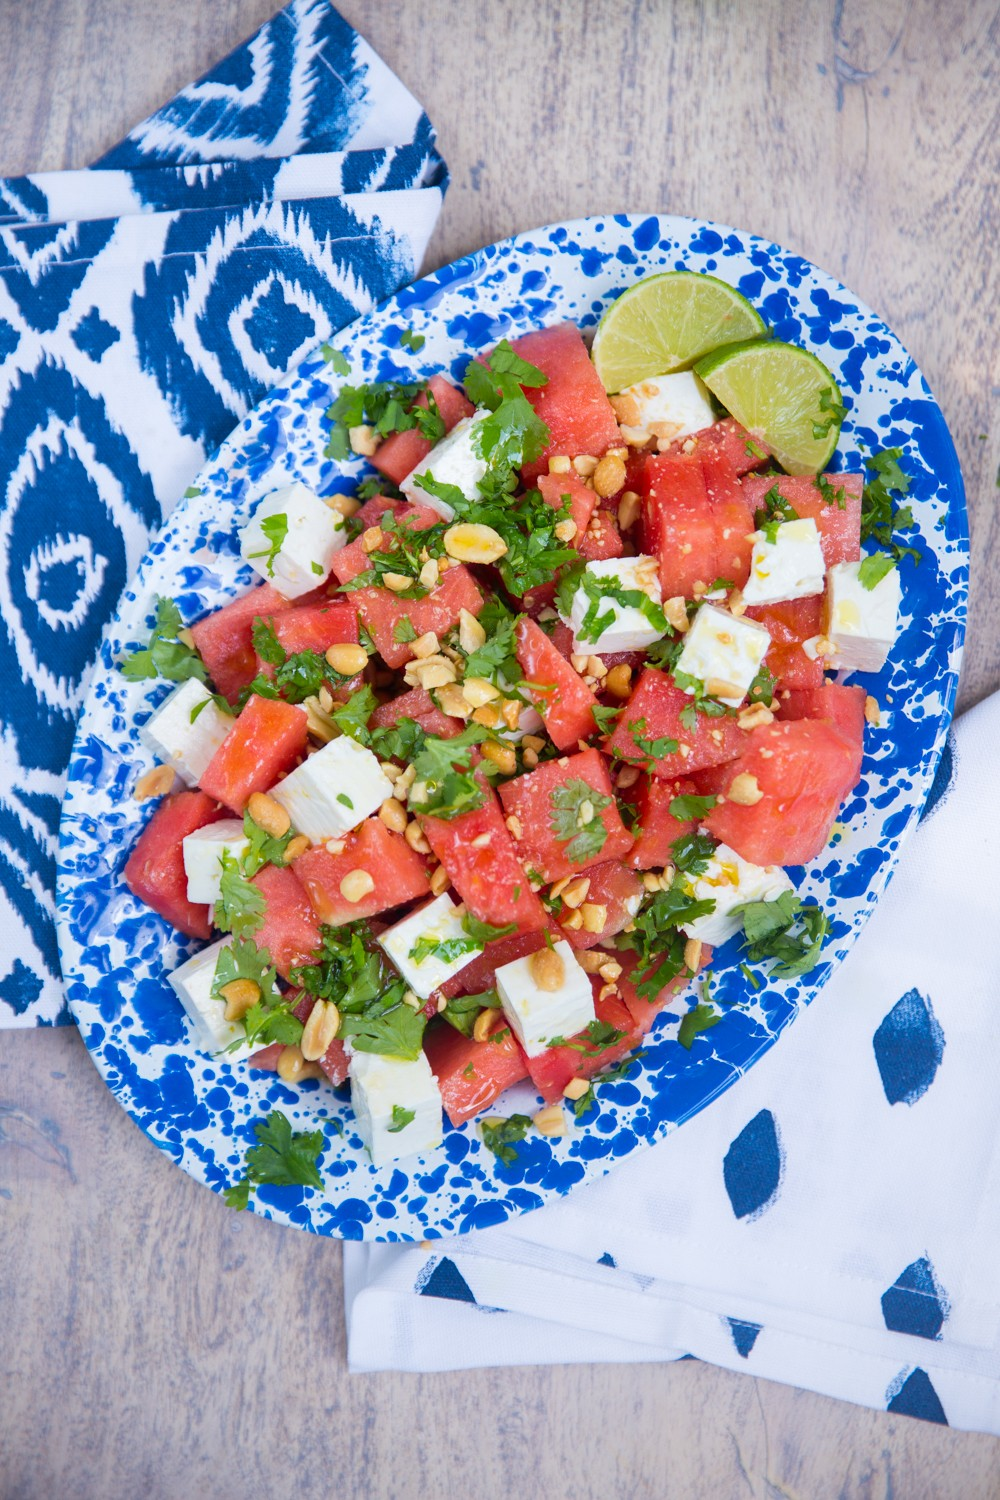 The easiest (and best!) Watermelon Salad recipe